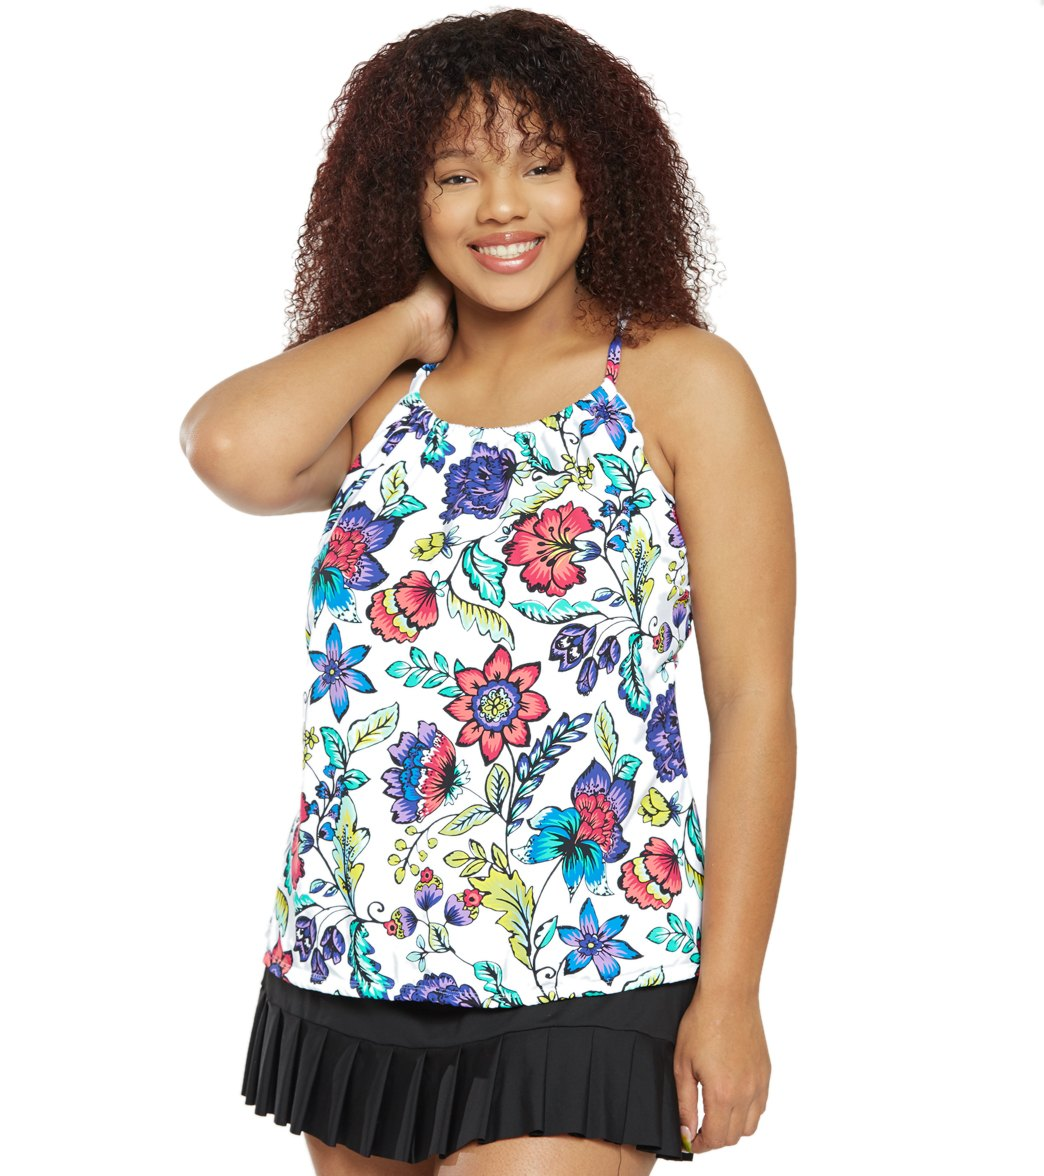 040d8bb7e2a36 24th & Ocean Plus Size Flora Botanica High Neck Underwire Tankini Top at  SwimOutlet.com - Free Shipping